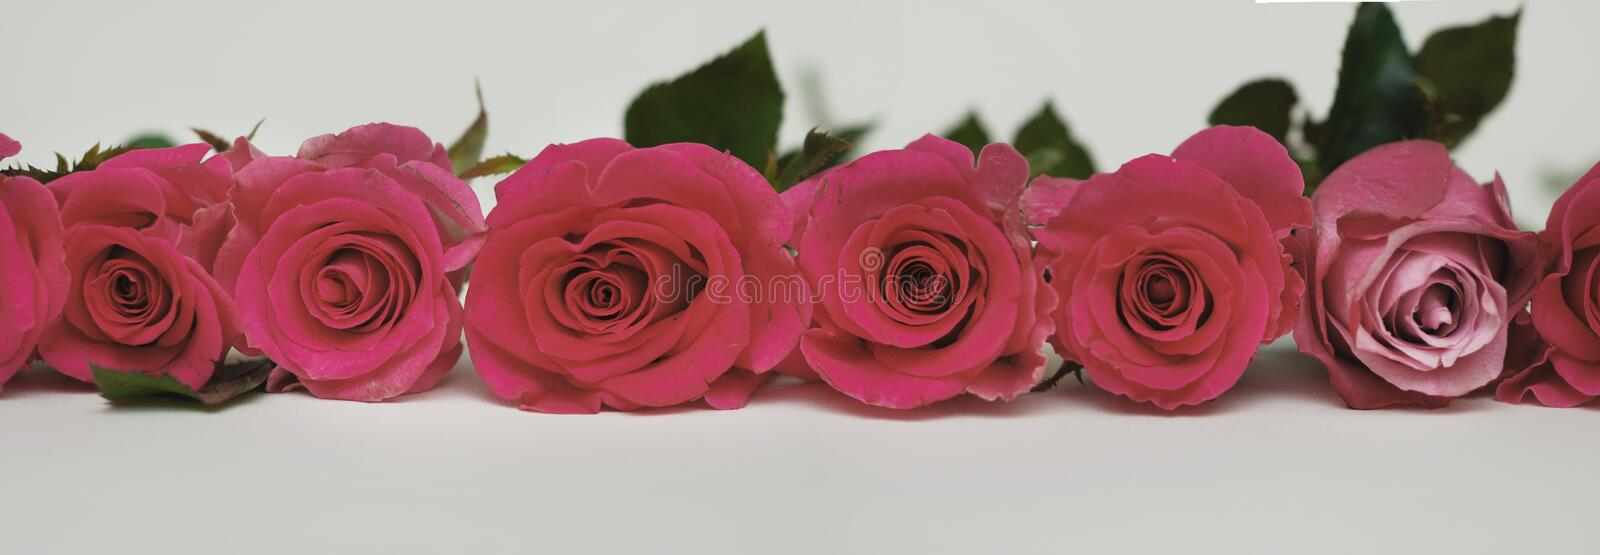 Beautiful Red Roses Arranged in Line Isolated on White. Banner. stock photo